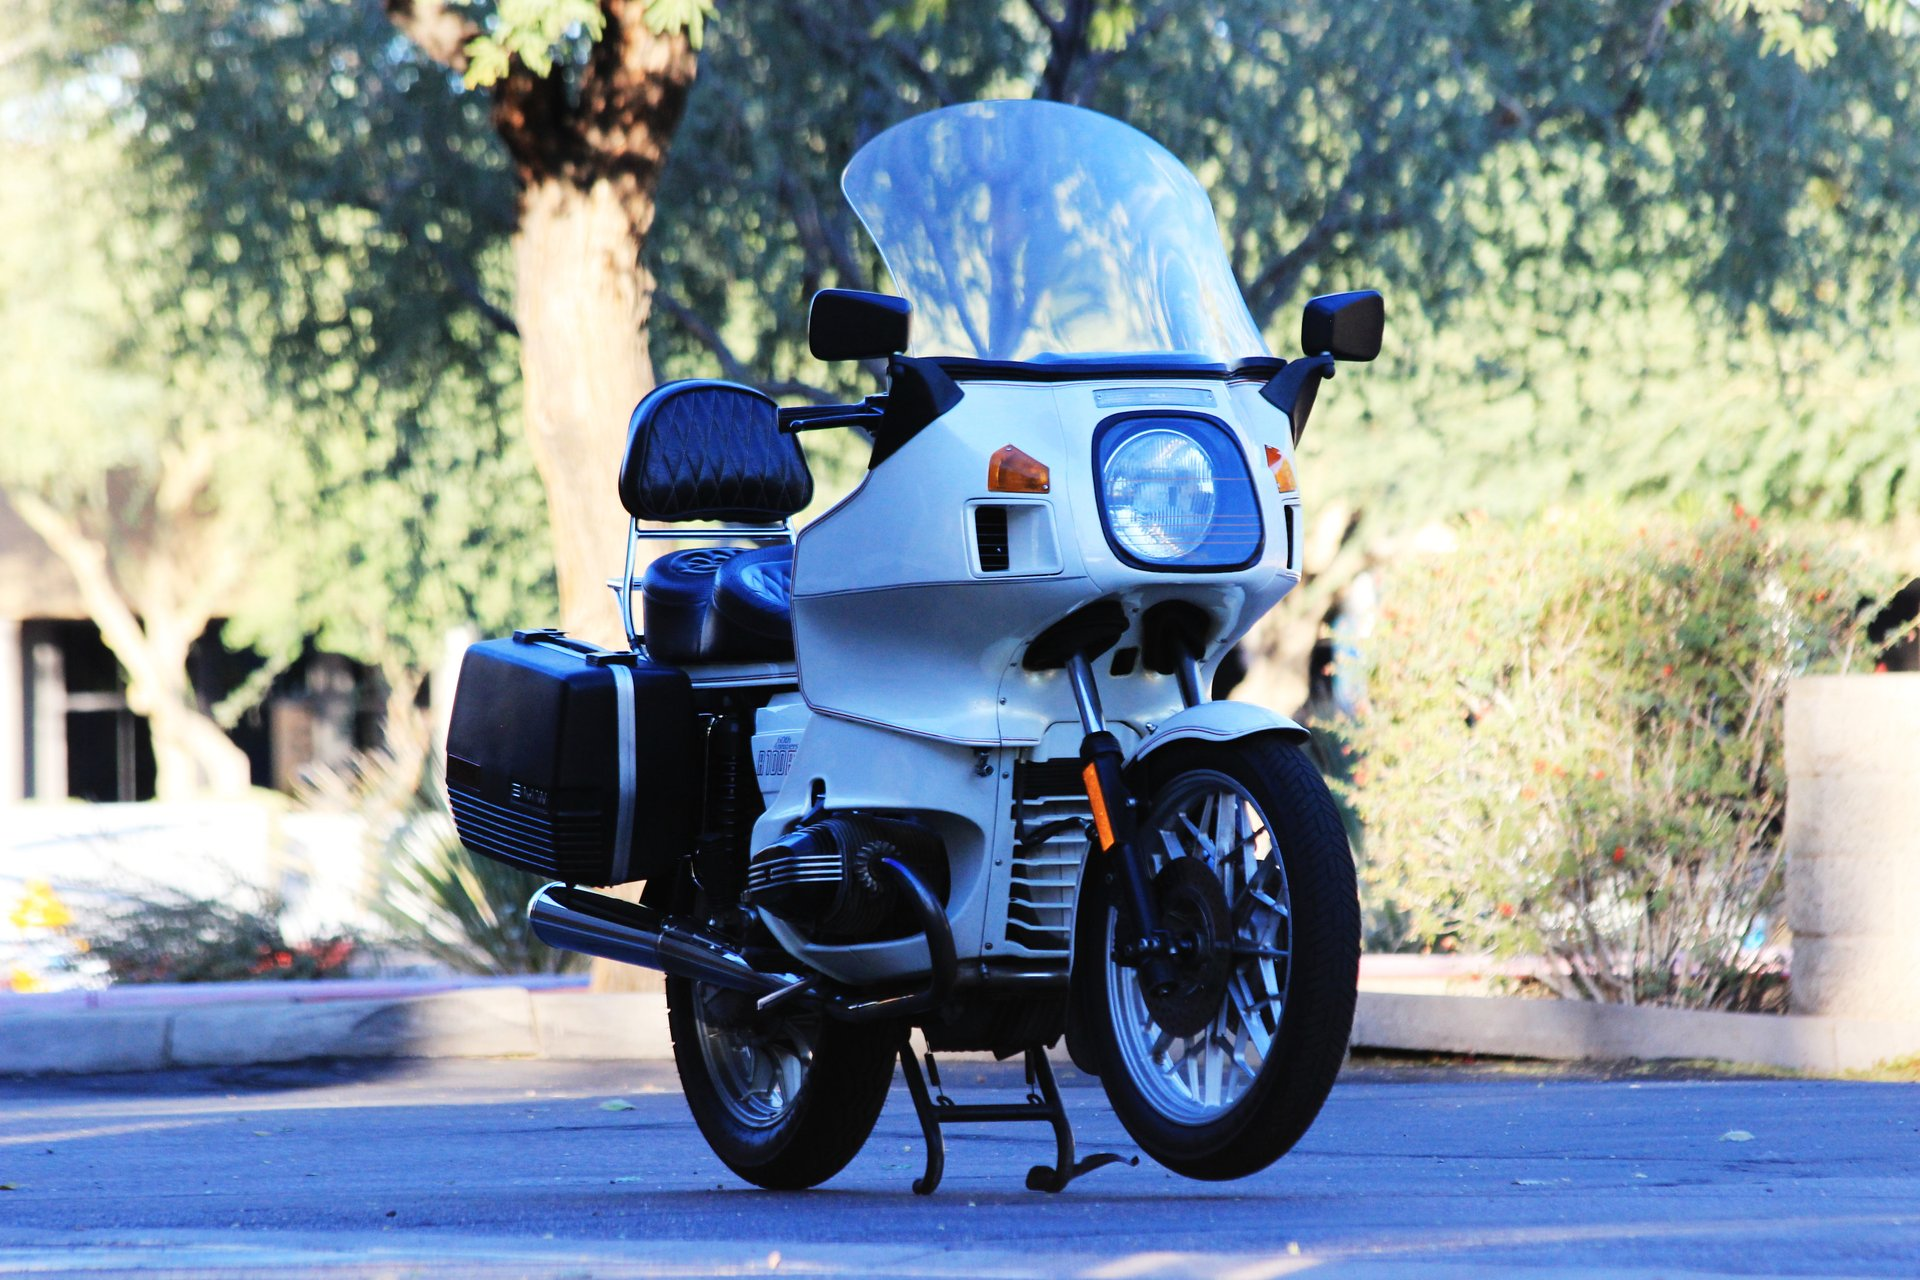 1983 BMW R100RT | Classic & Collectible vehicle storage